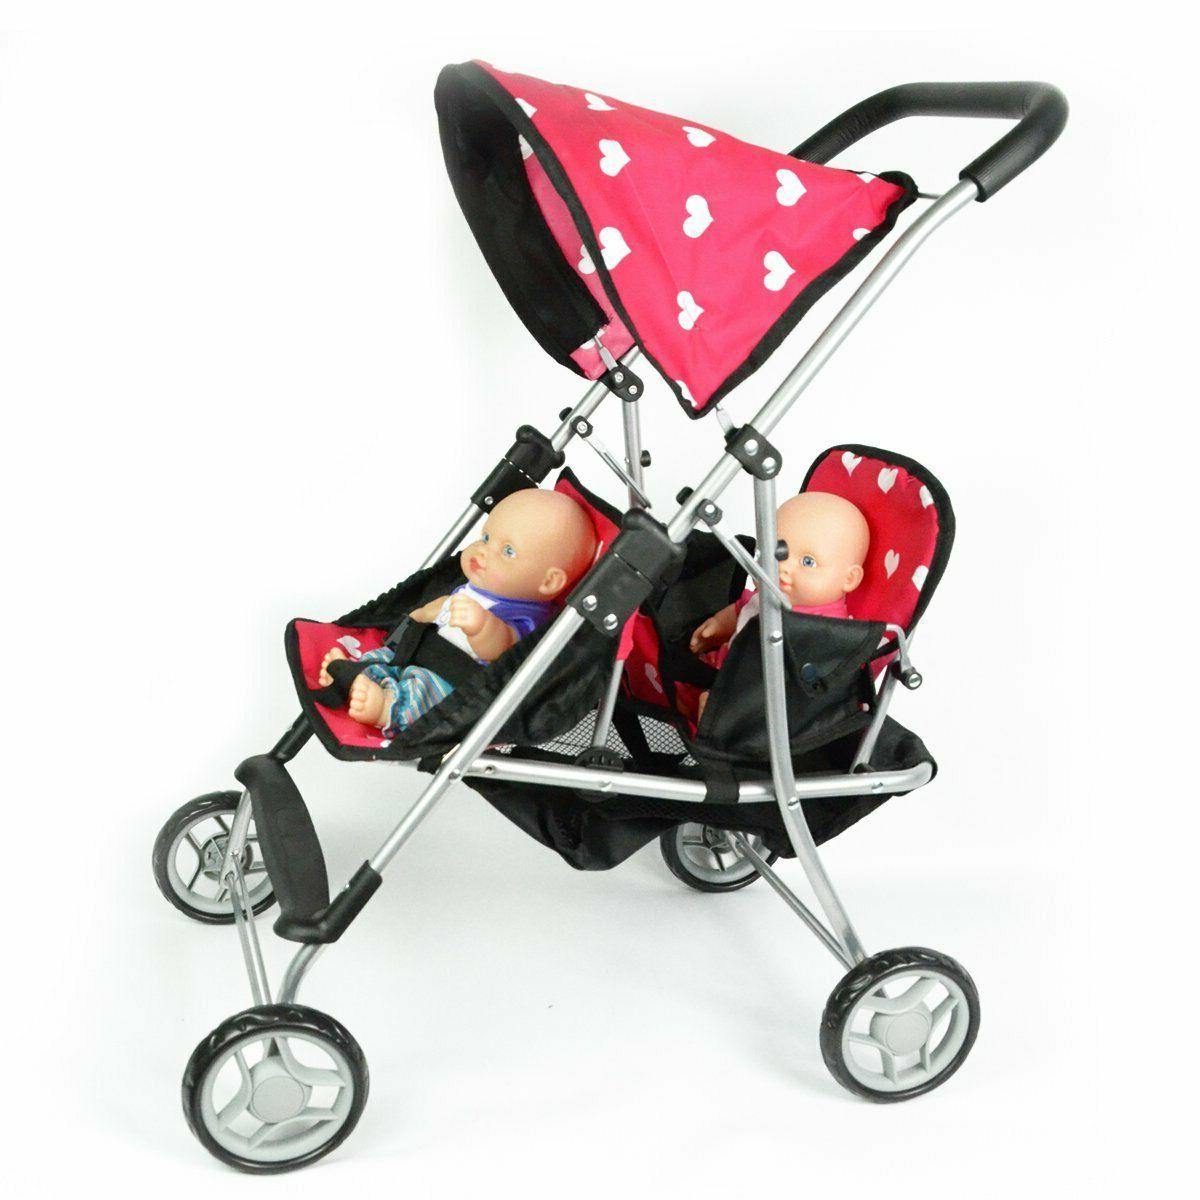 Infant Maxi-Cosi Adorra Stroller, Size One Size - Black